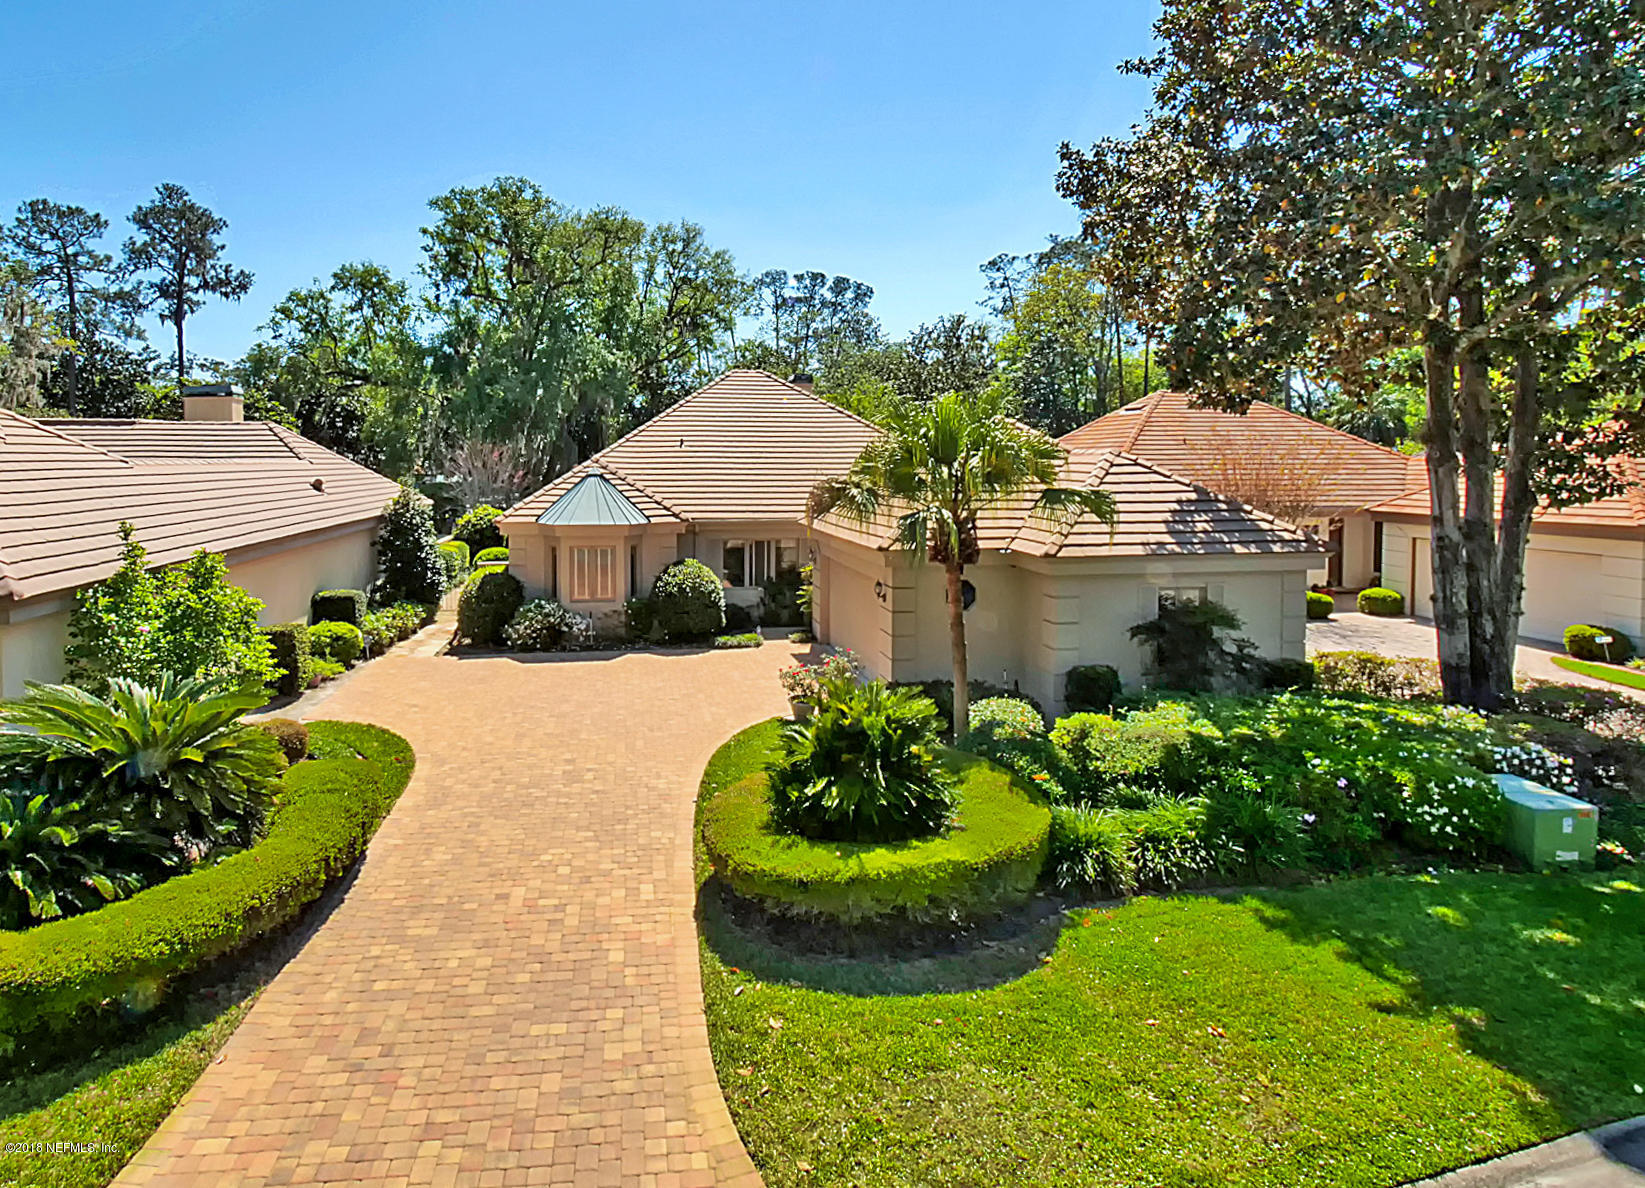 6778 LINFORD, JACKSONVILLE, FLORIDA 32217, 3 Bedrooms Bedrooms, ,2 BathroomsBathrooms,Residential - single family,For sale,LINFORD,956501